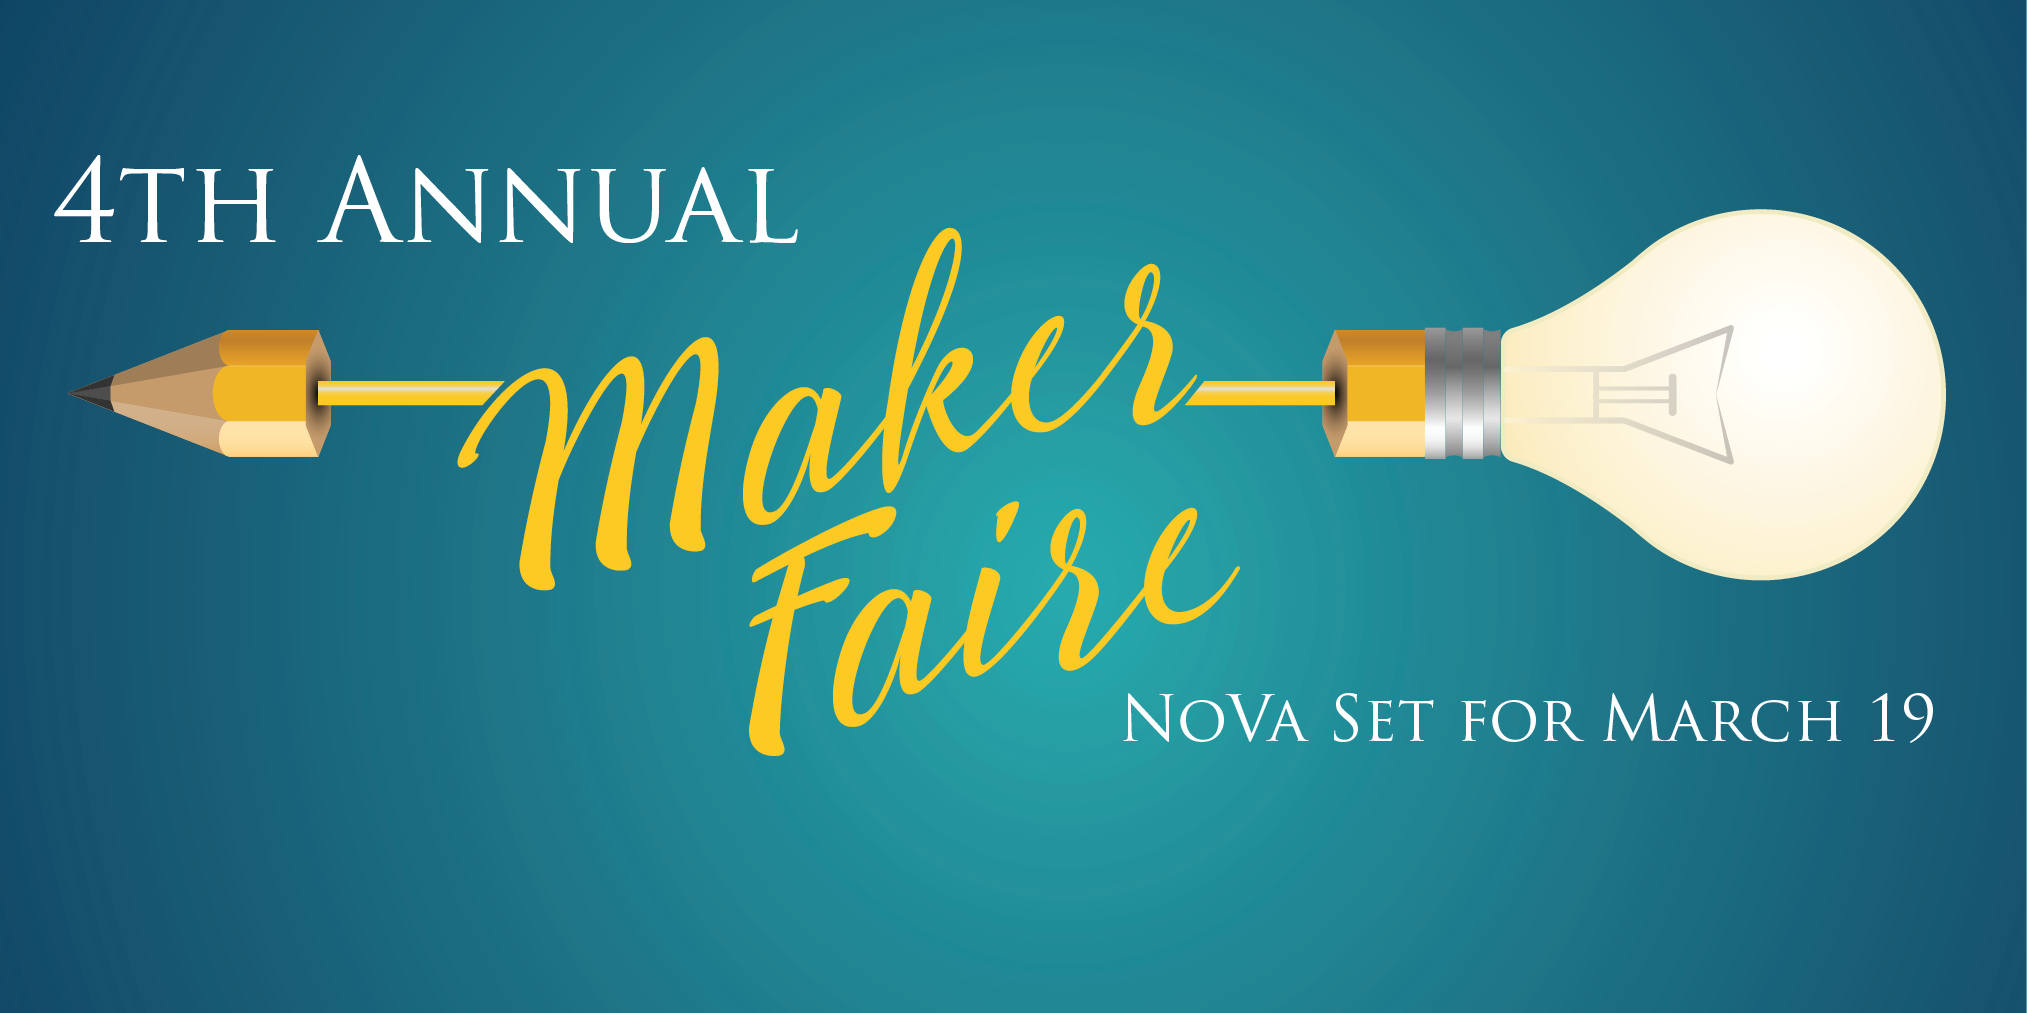 4th Annual Maker Faire NoVA